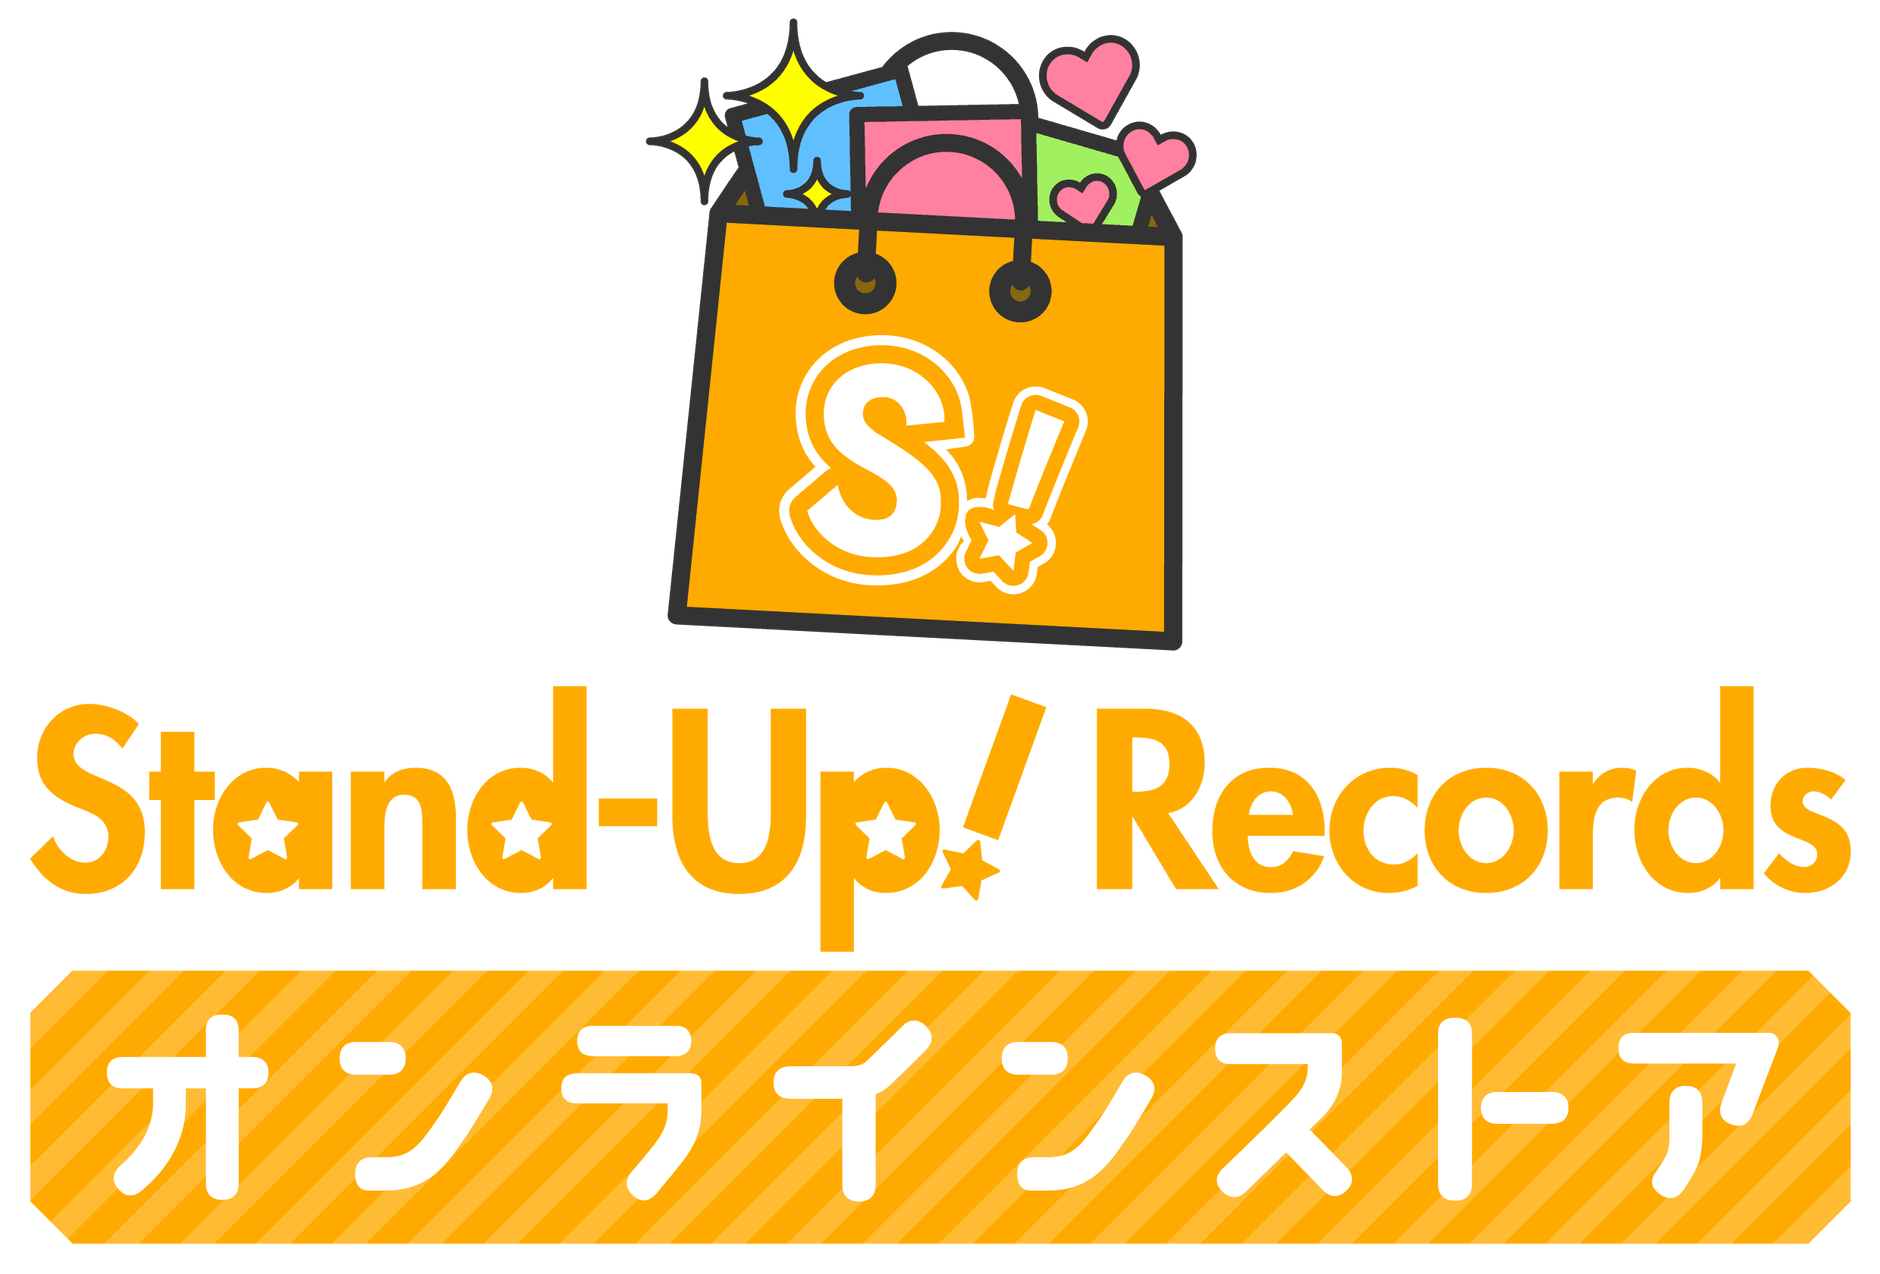 Stand-Up! Records オンラインストア